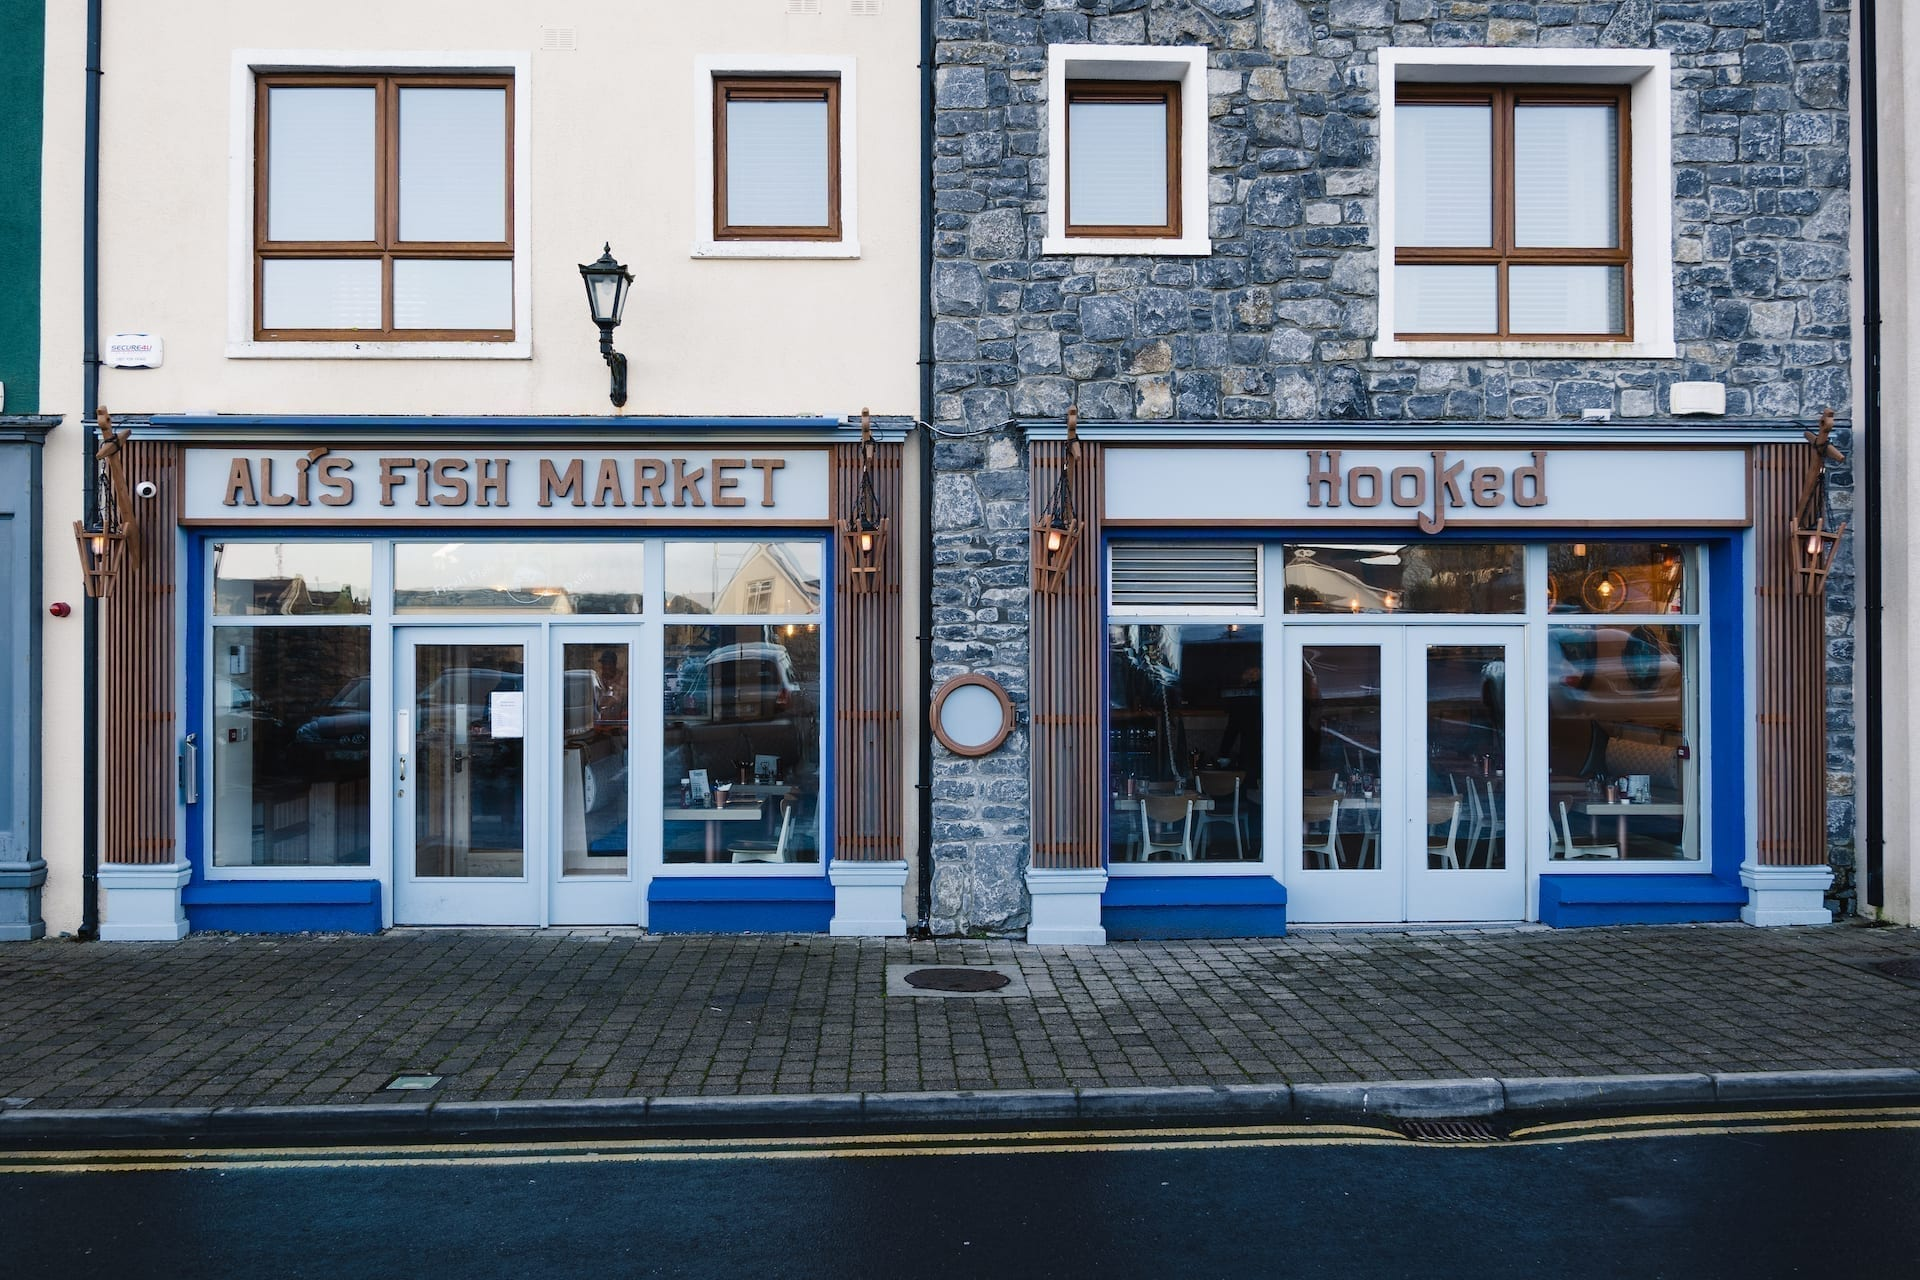 Hooked Barna cooks up fresh and local seafood dishes for both dine-in and takeaway